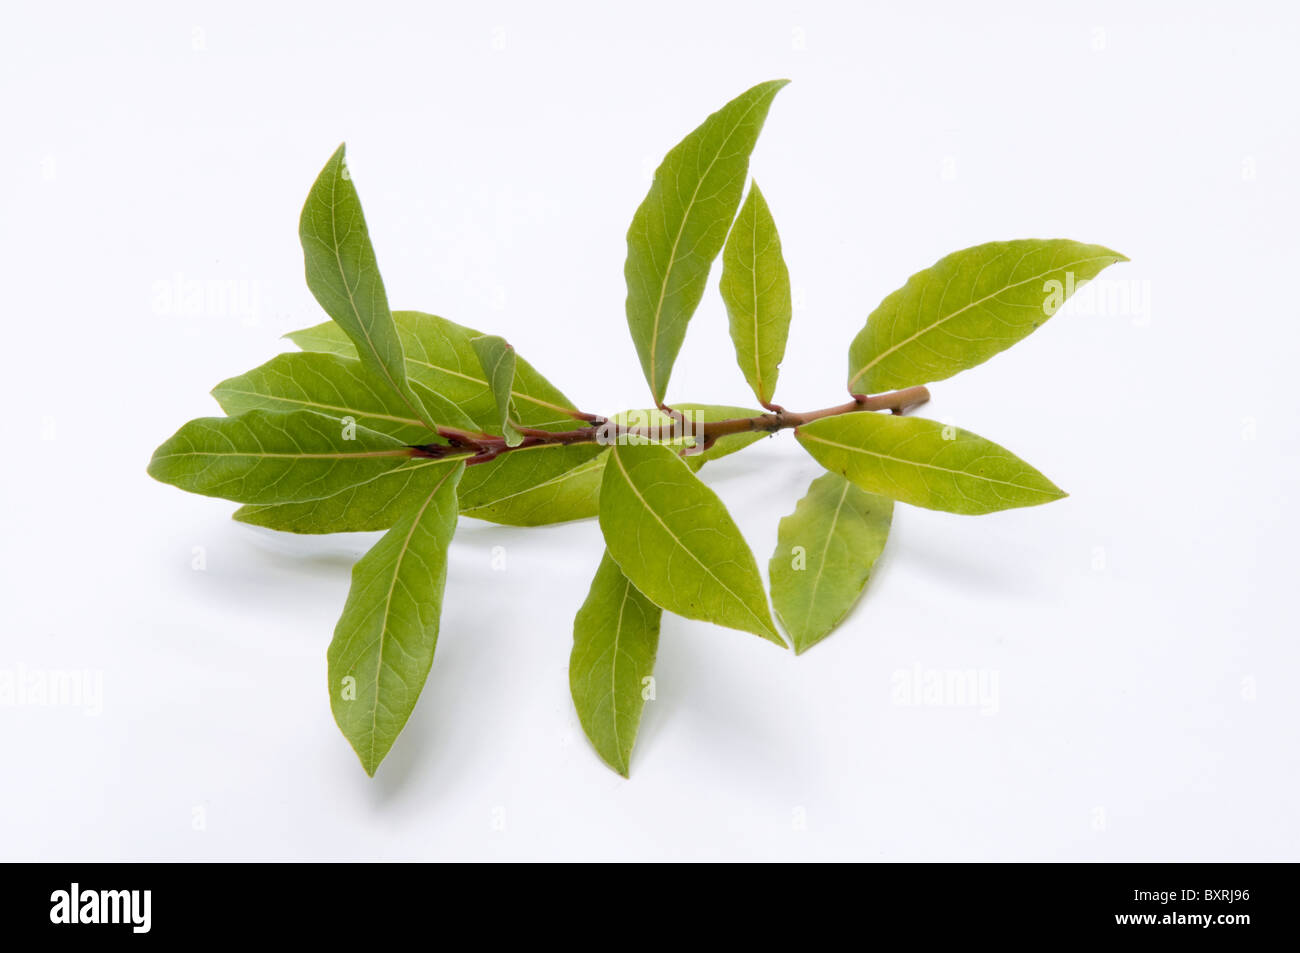 Close-up of bay leaves on branch - Stock Image